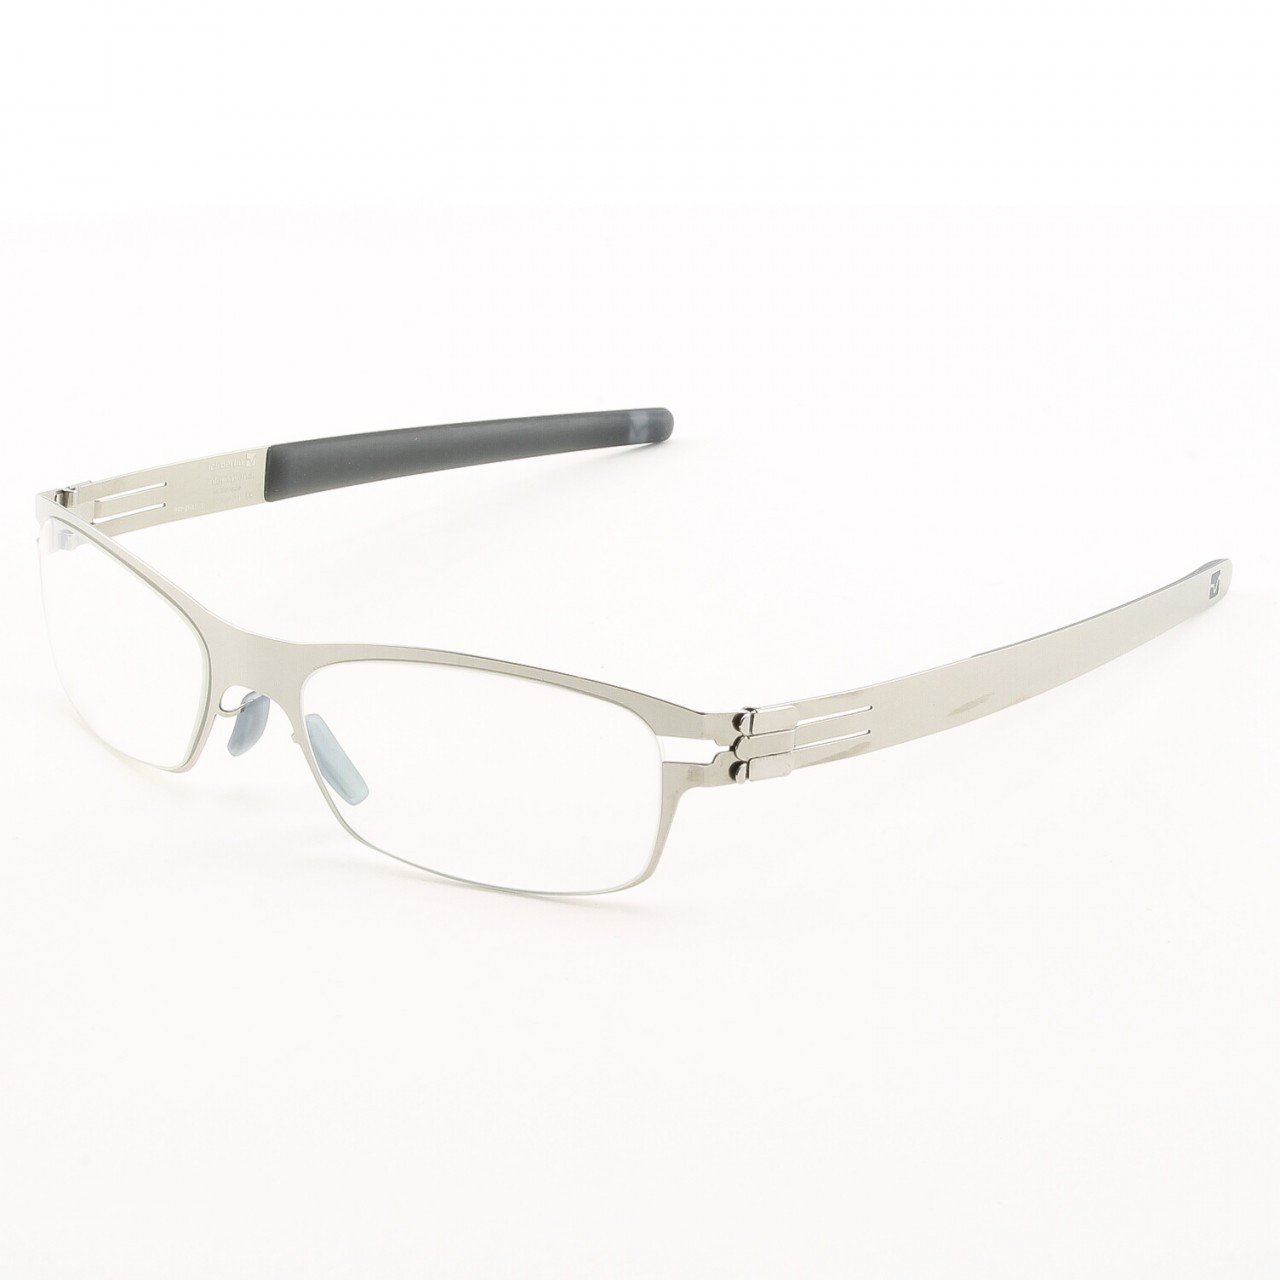 ic! Berlin Tennooji Eyeglasses Col. Chrome with Clear Lenses